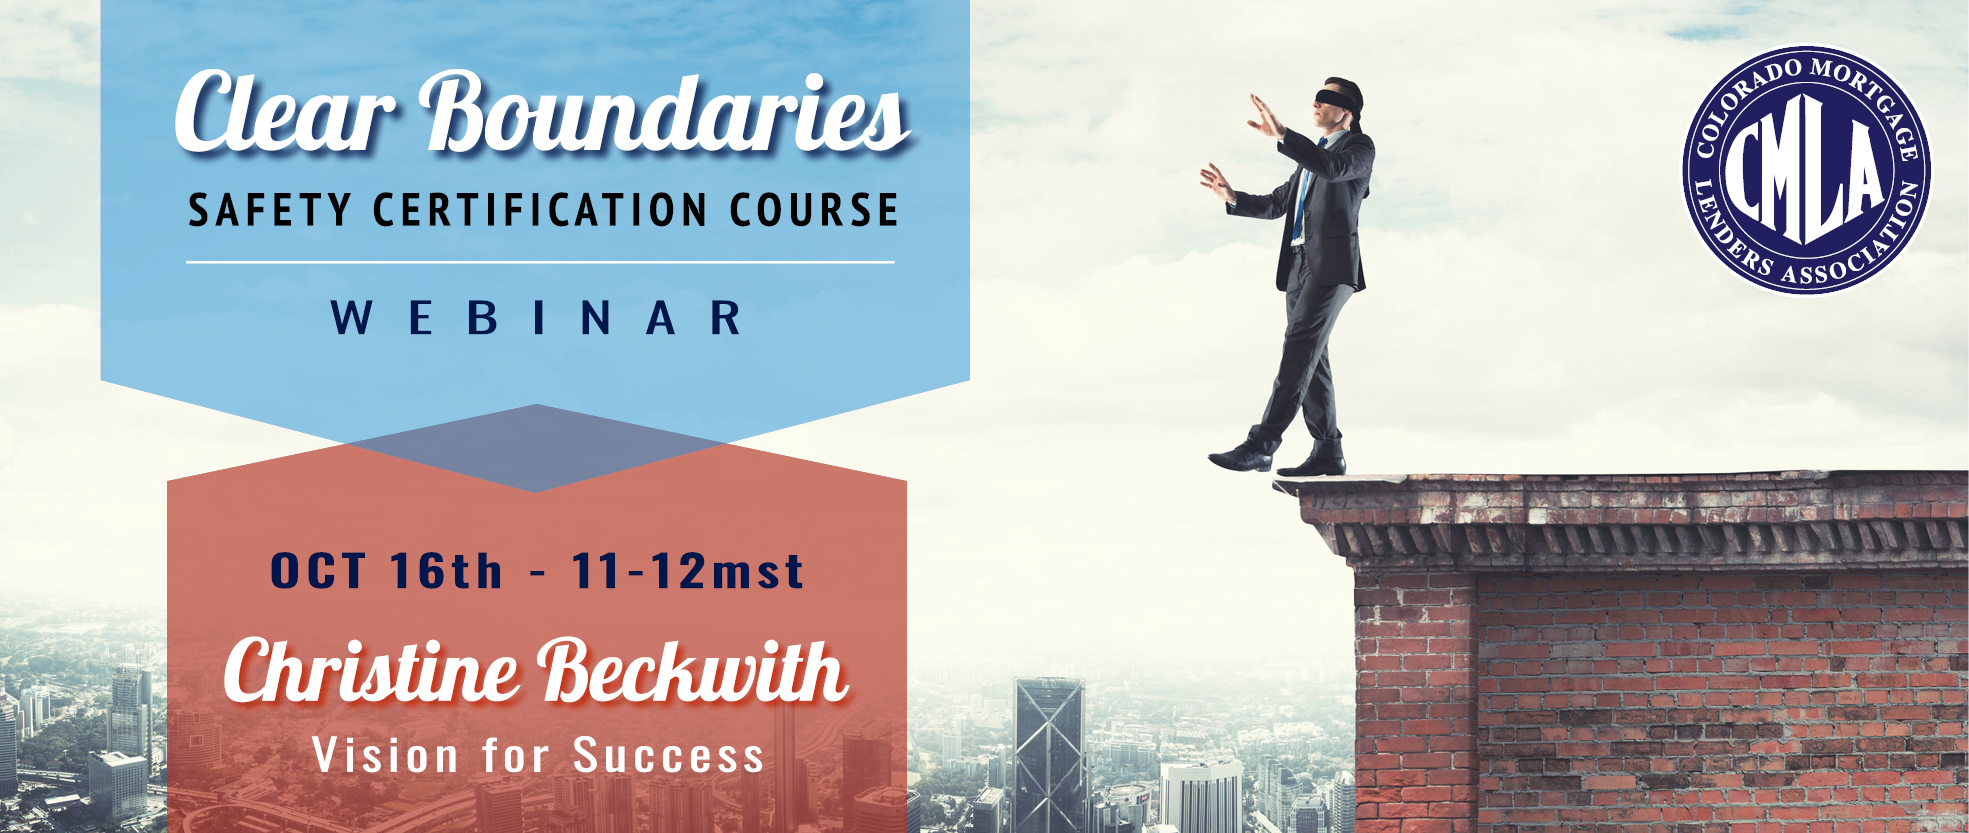 Clear Boundaries Safety Certification